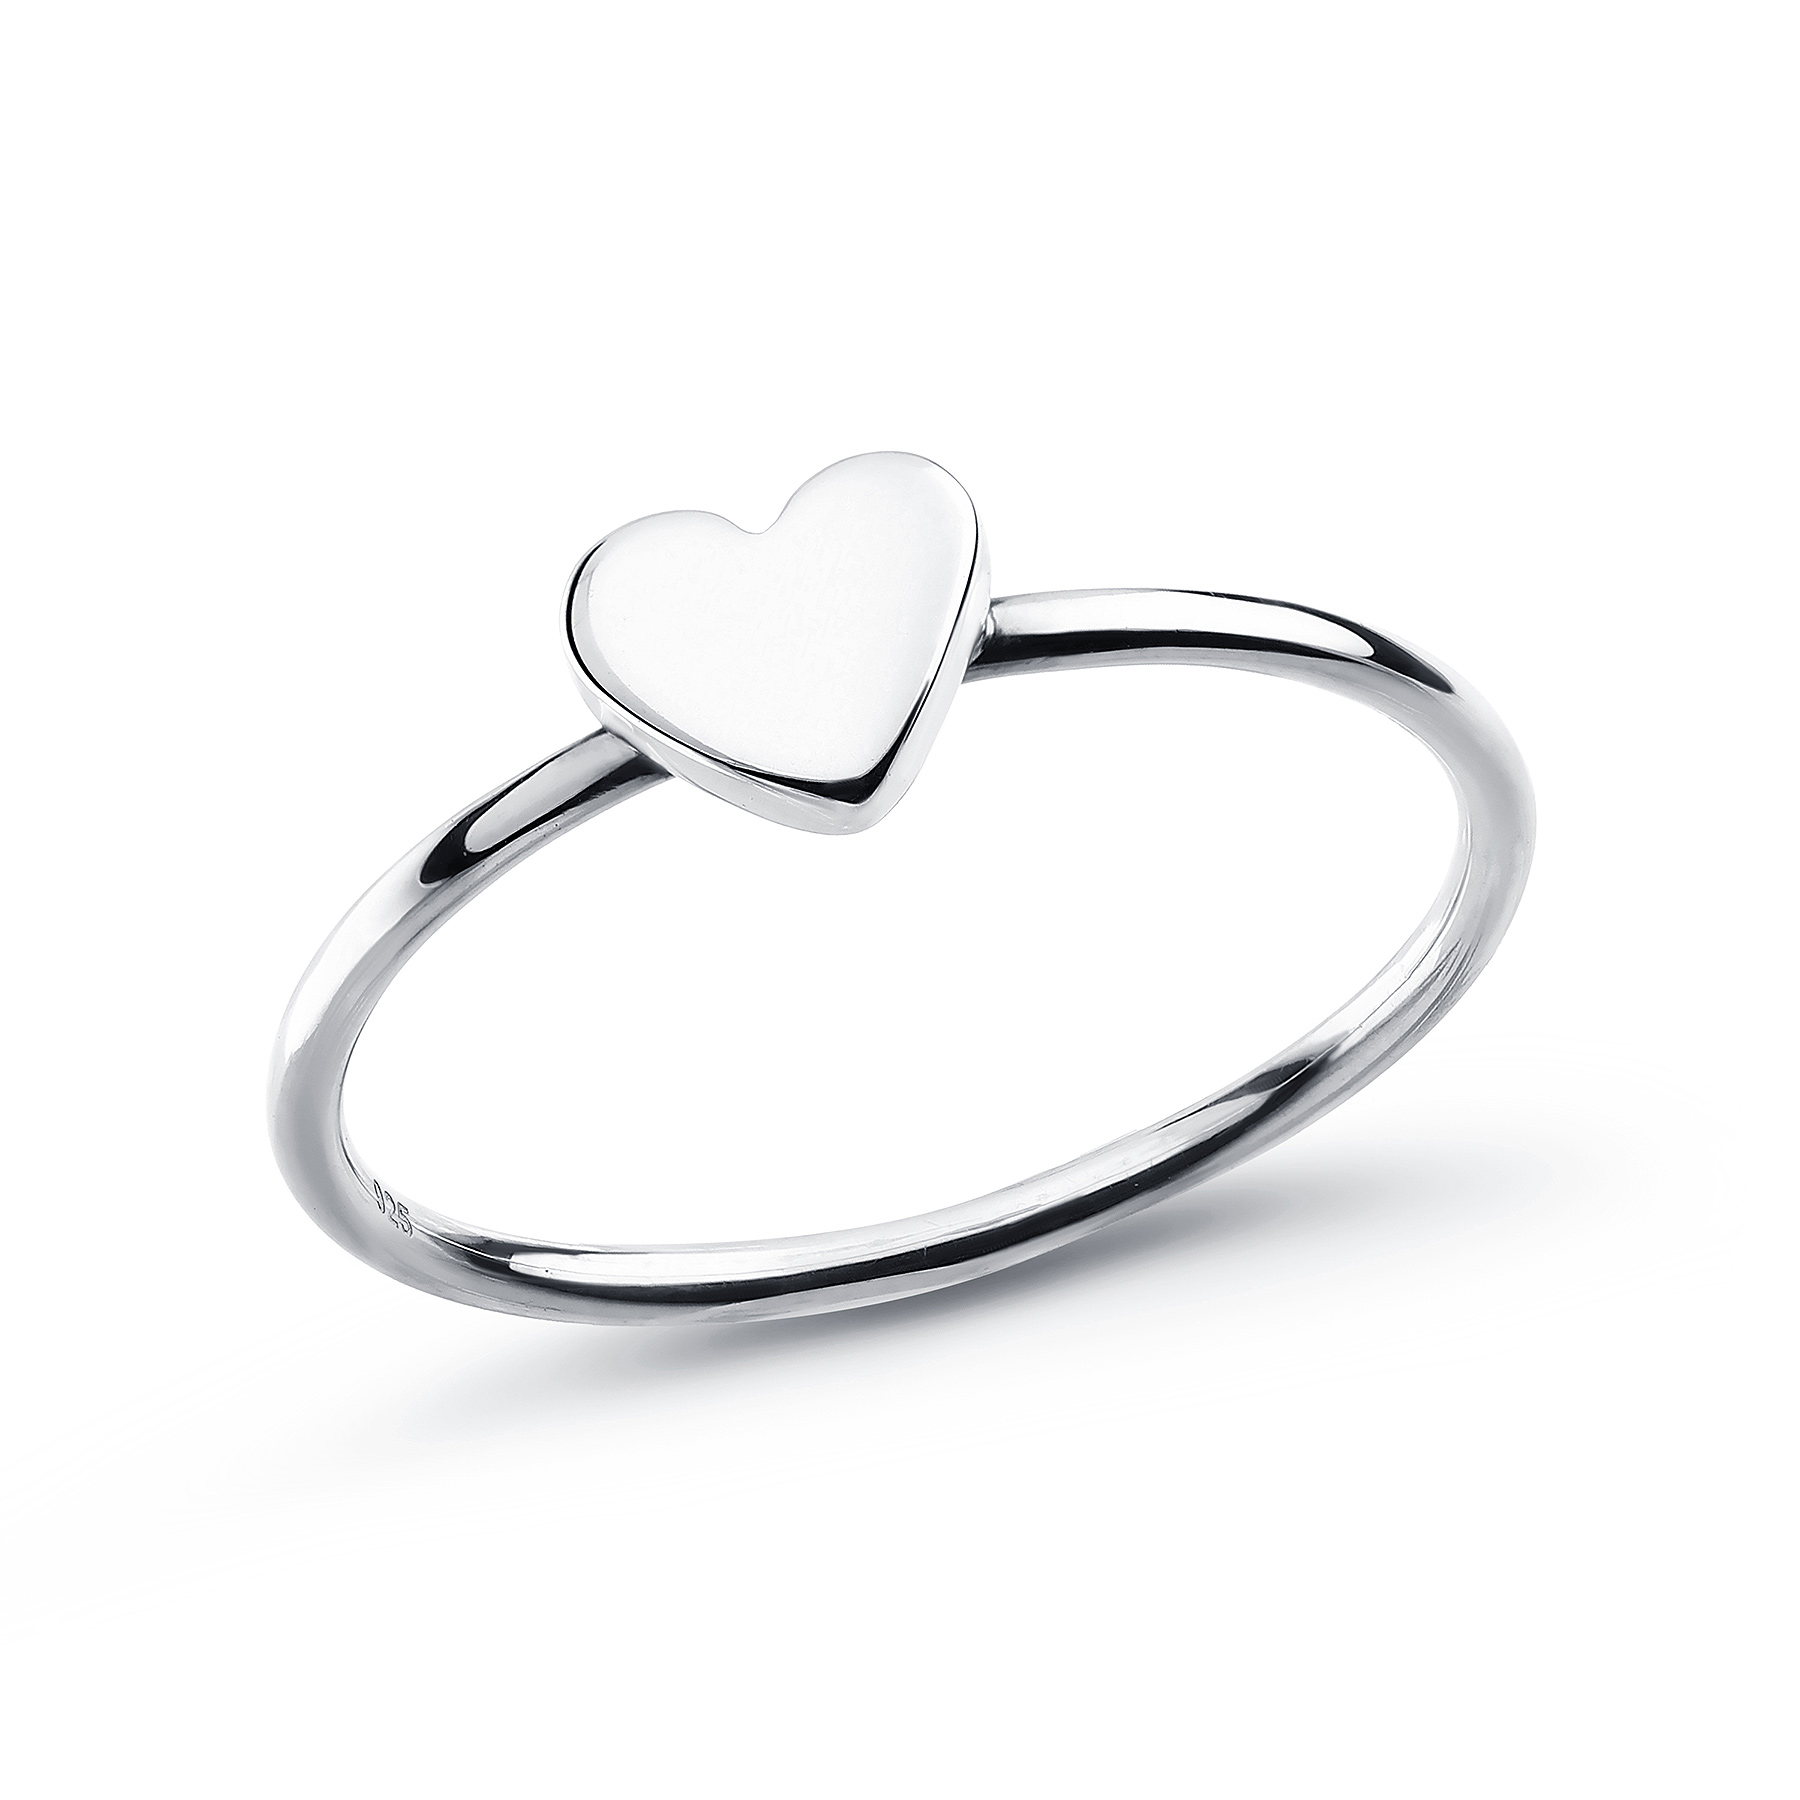 706-15795 - 925 Sterling Silver Heart Ring